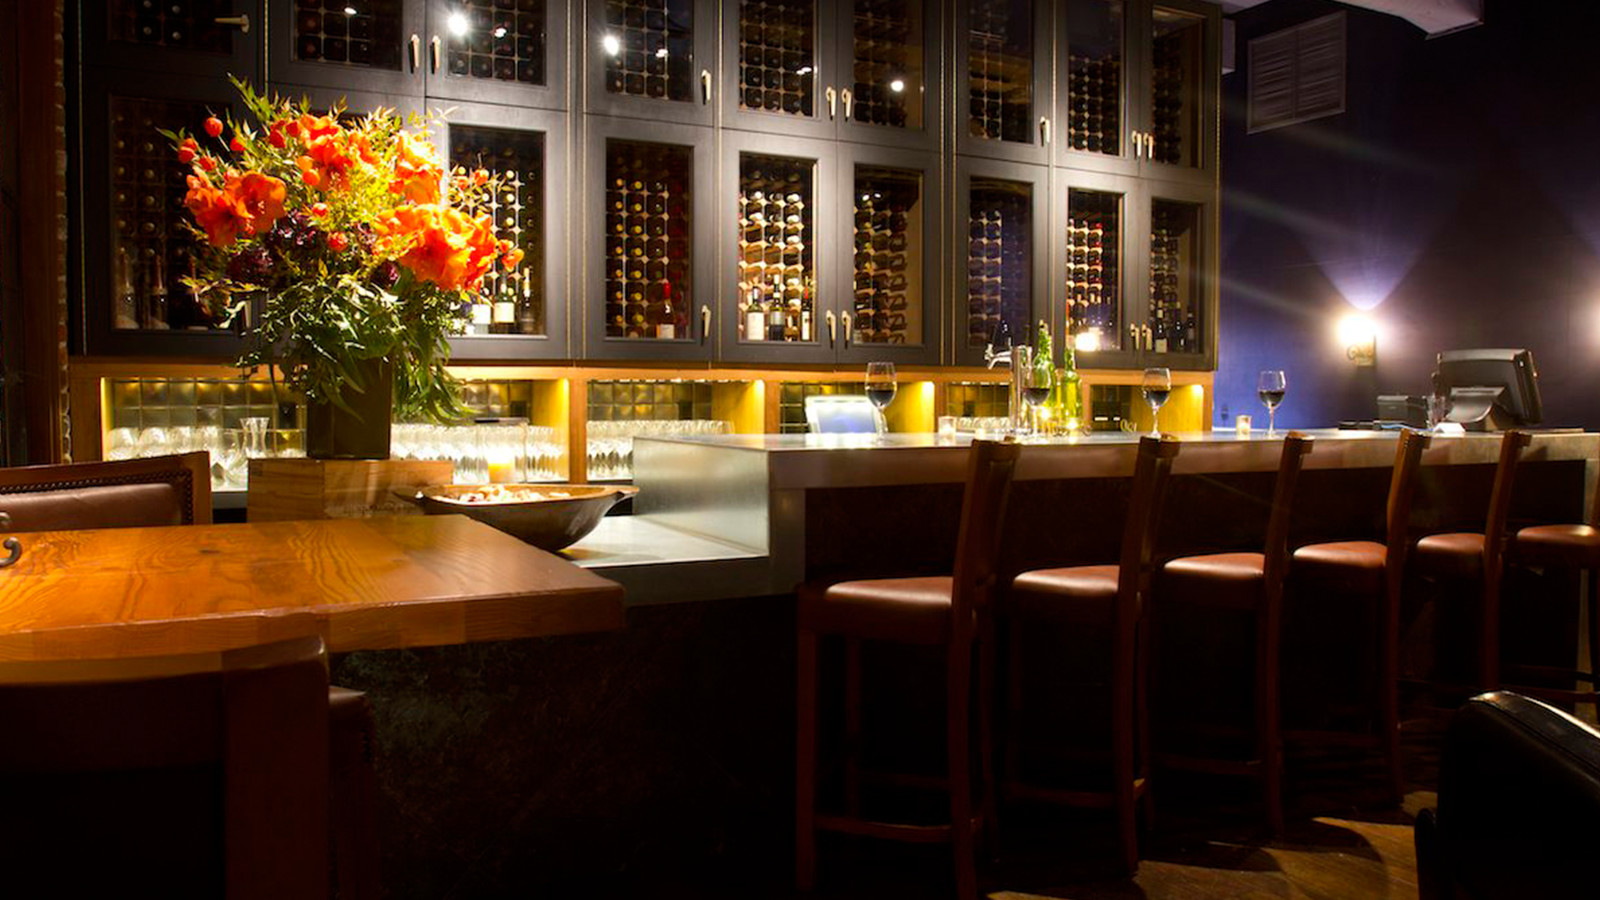 Interior view of the Hidden Vine Wine bar